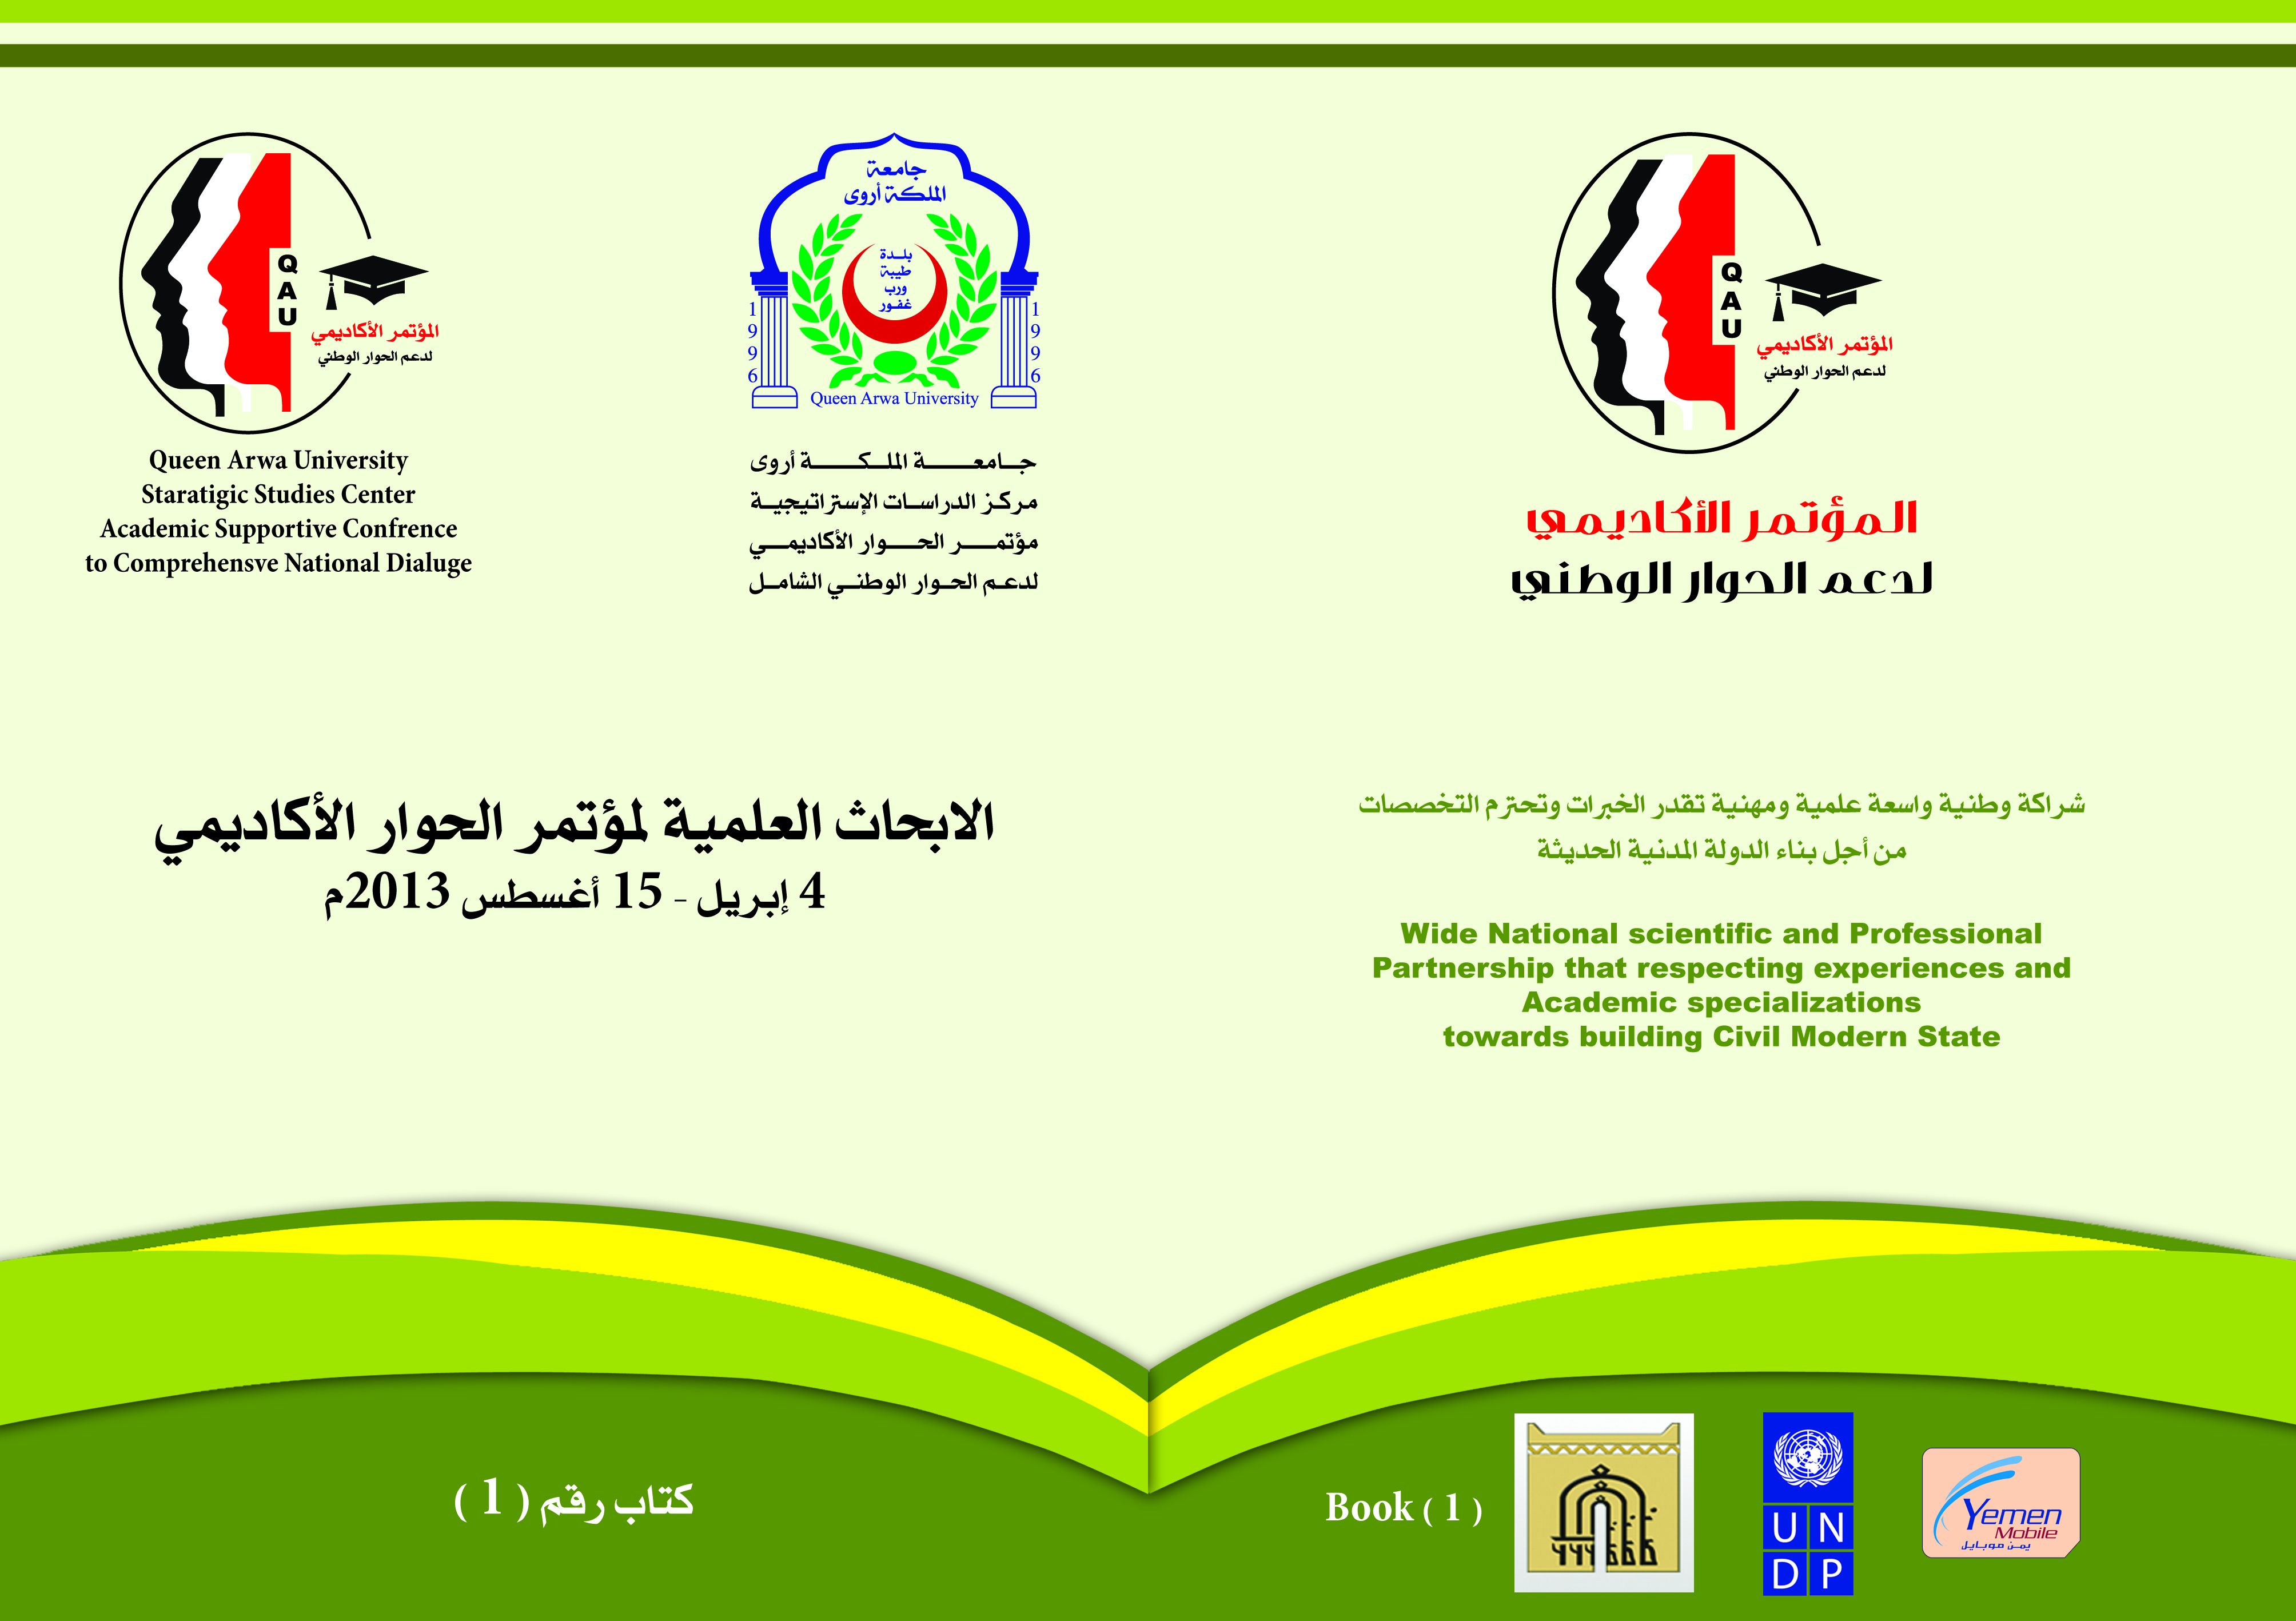 Researchs submitted to the academic conference to support the comprehensive national dialogue